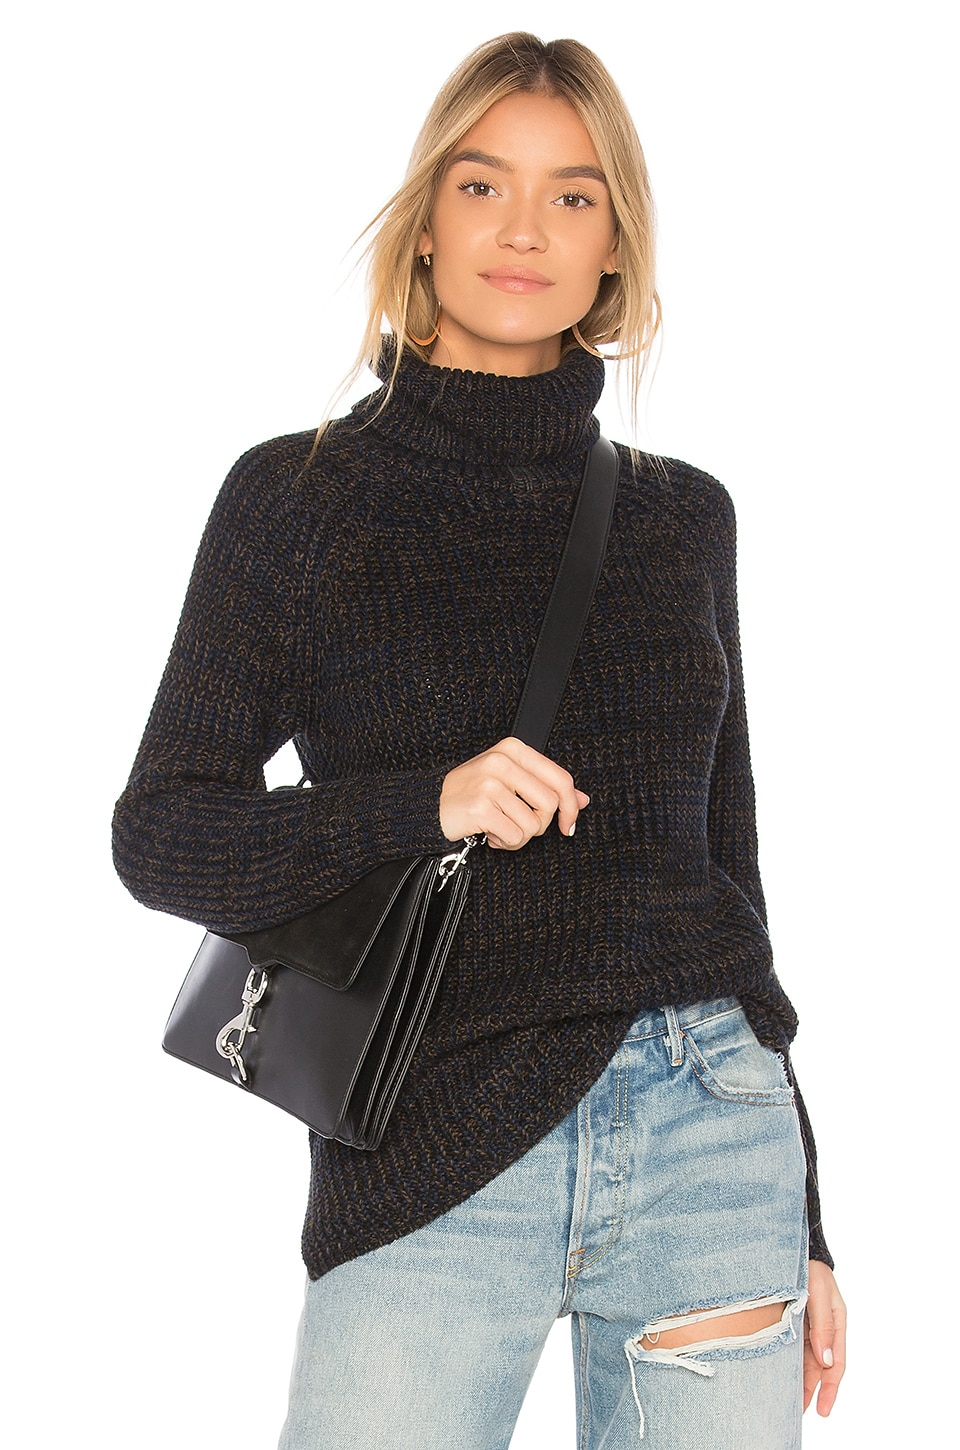 525 america Turtleneck Sweater in Black Combo